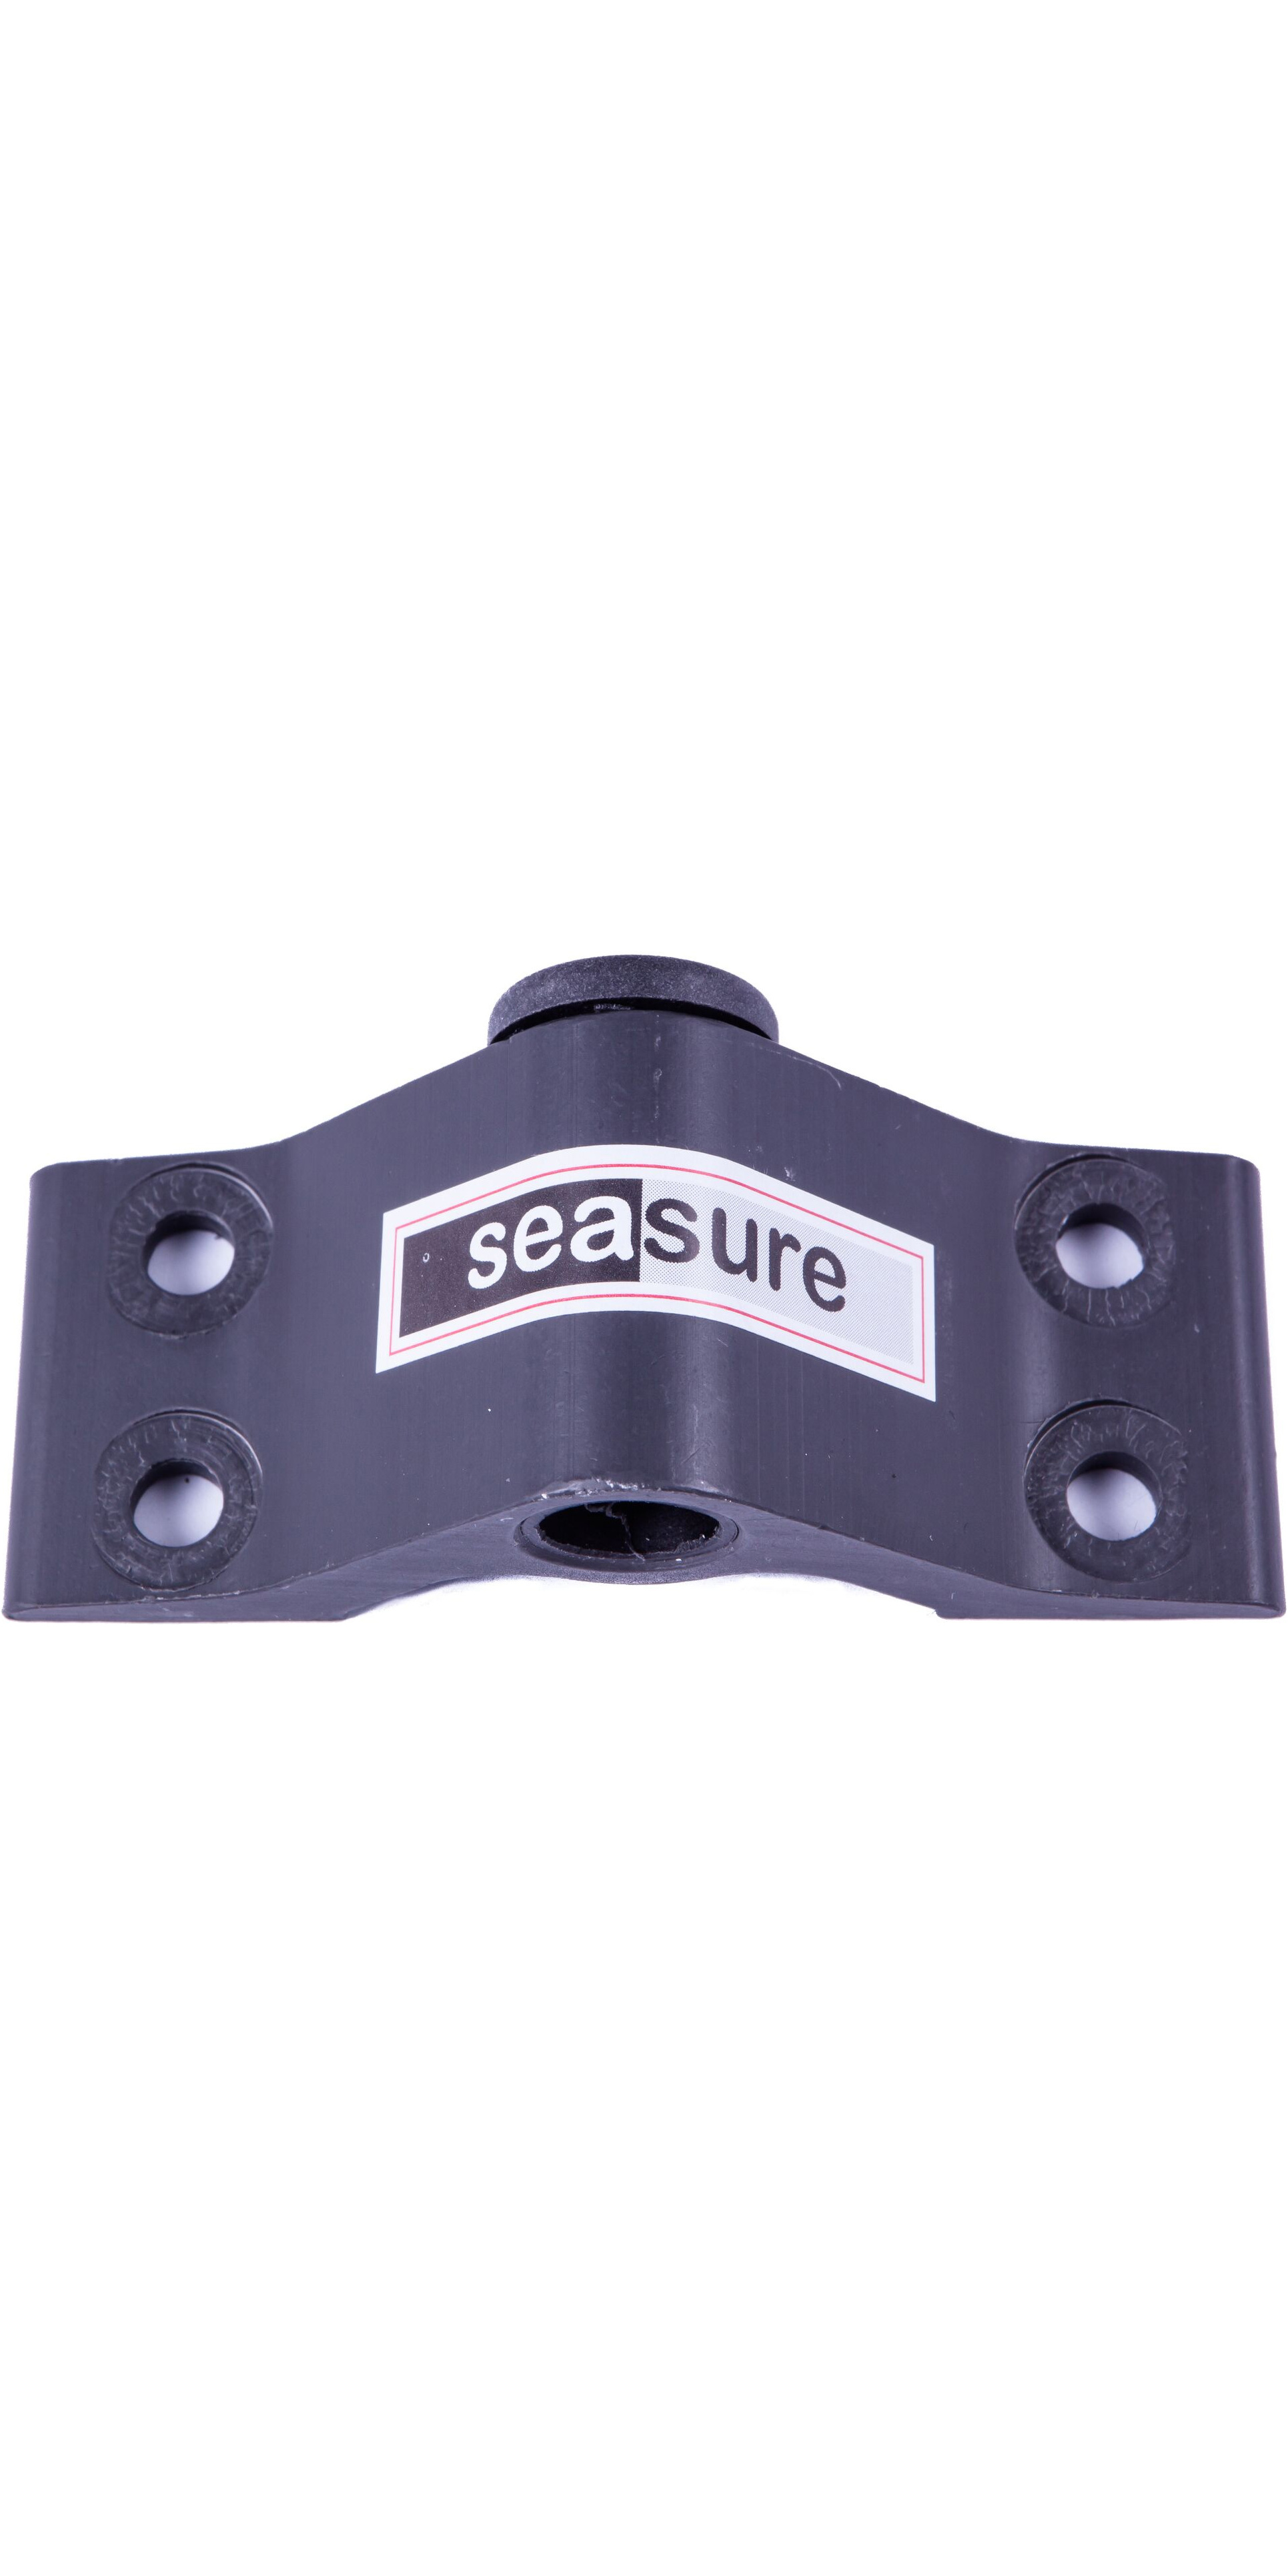 Sea Sure 8mm Bottom Transom Gudgeon 4-Hole Mounting With Carbon Brush - 5mm Mounting Holes